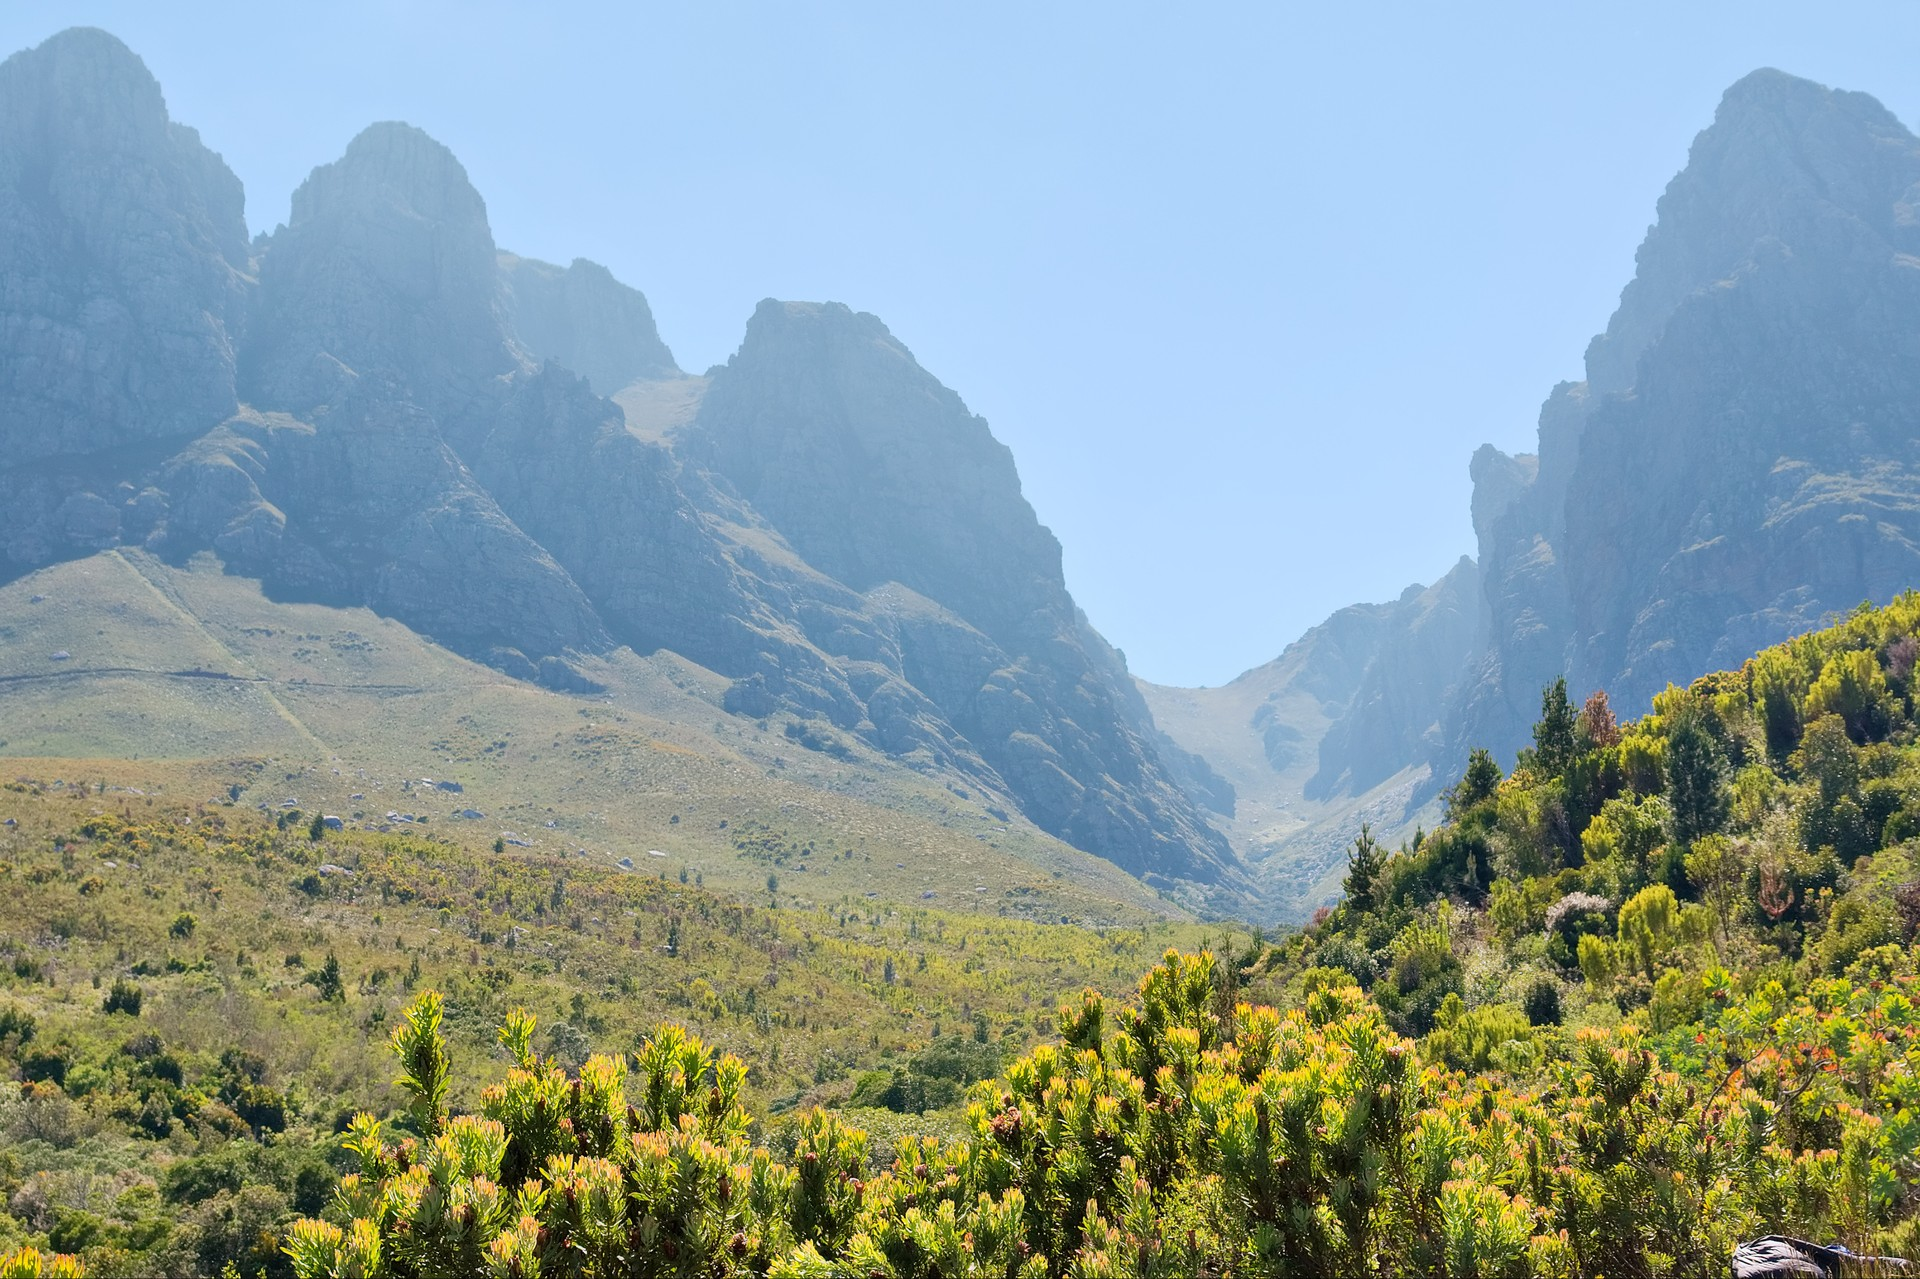 The green mountains of Somerset in western South Africa